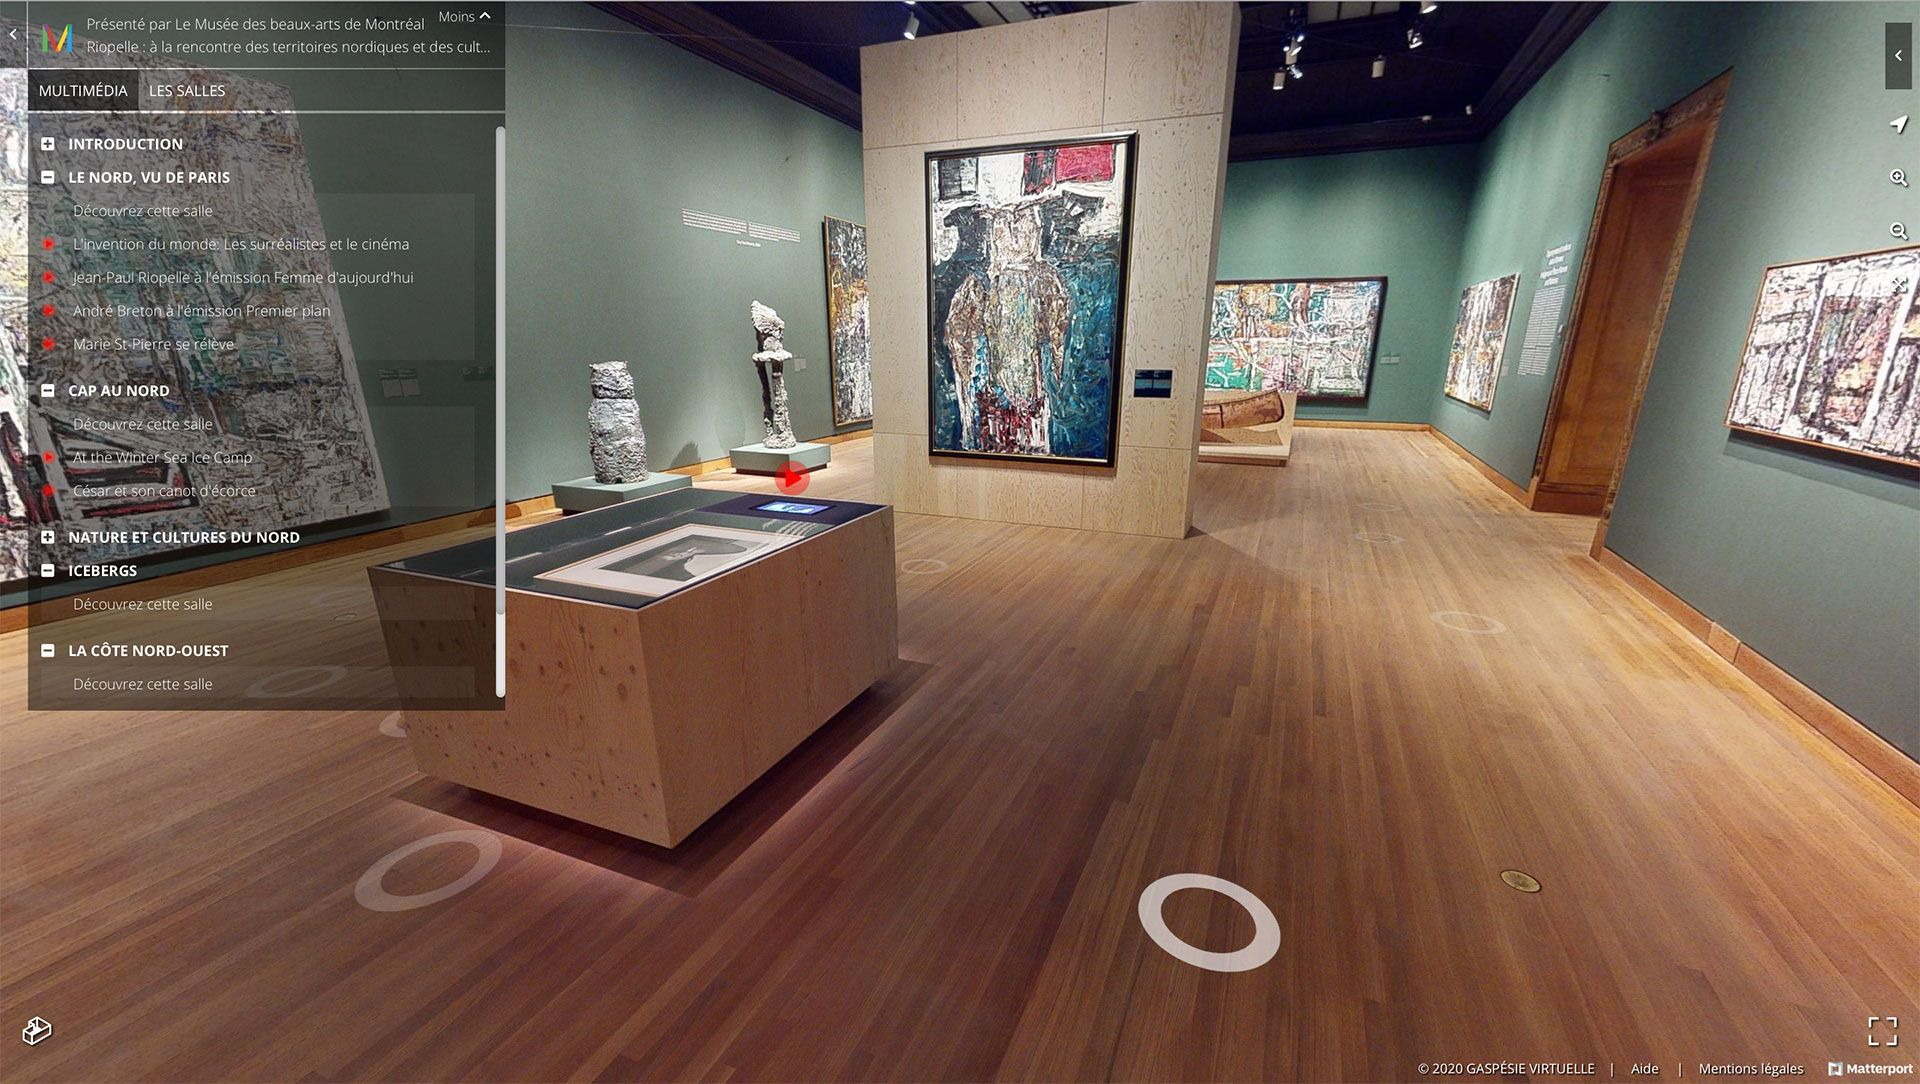 View of the virtual edition of the exhibition Riopelle: The Call of Northern Landscapes and Indigenous Cultures.